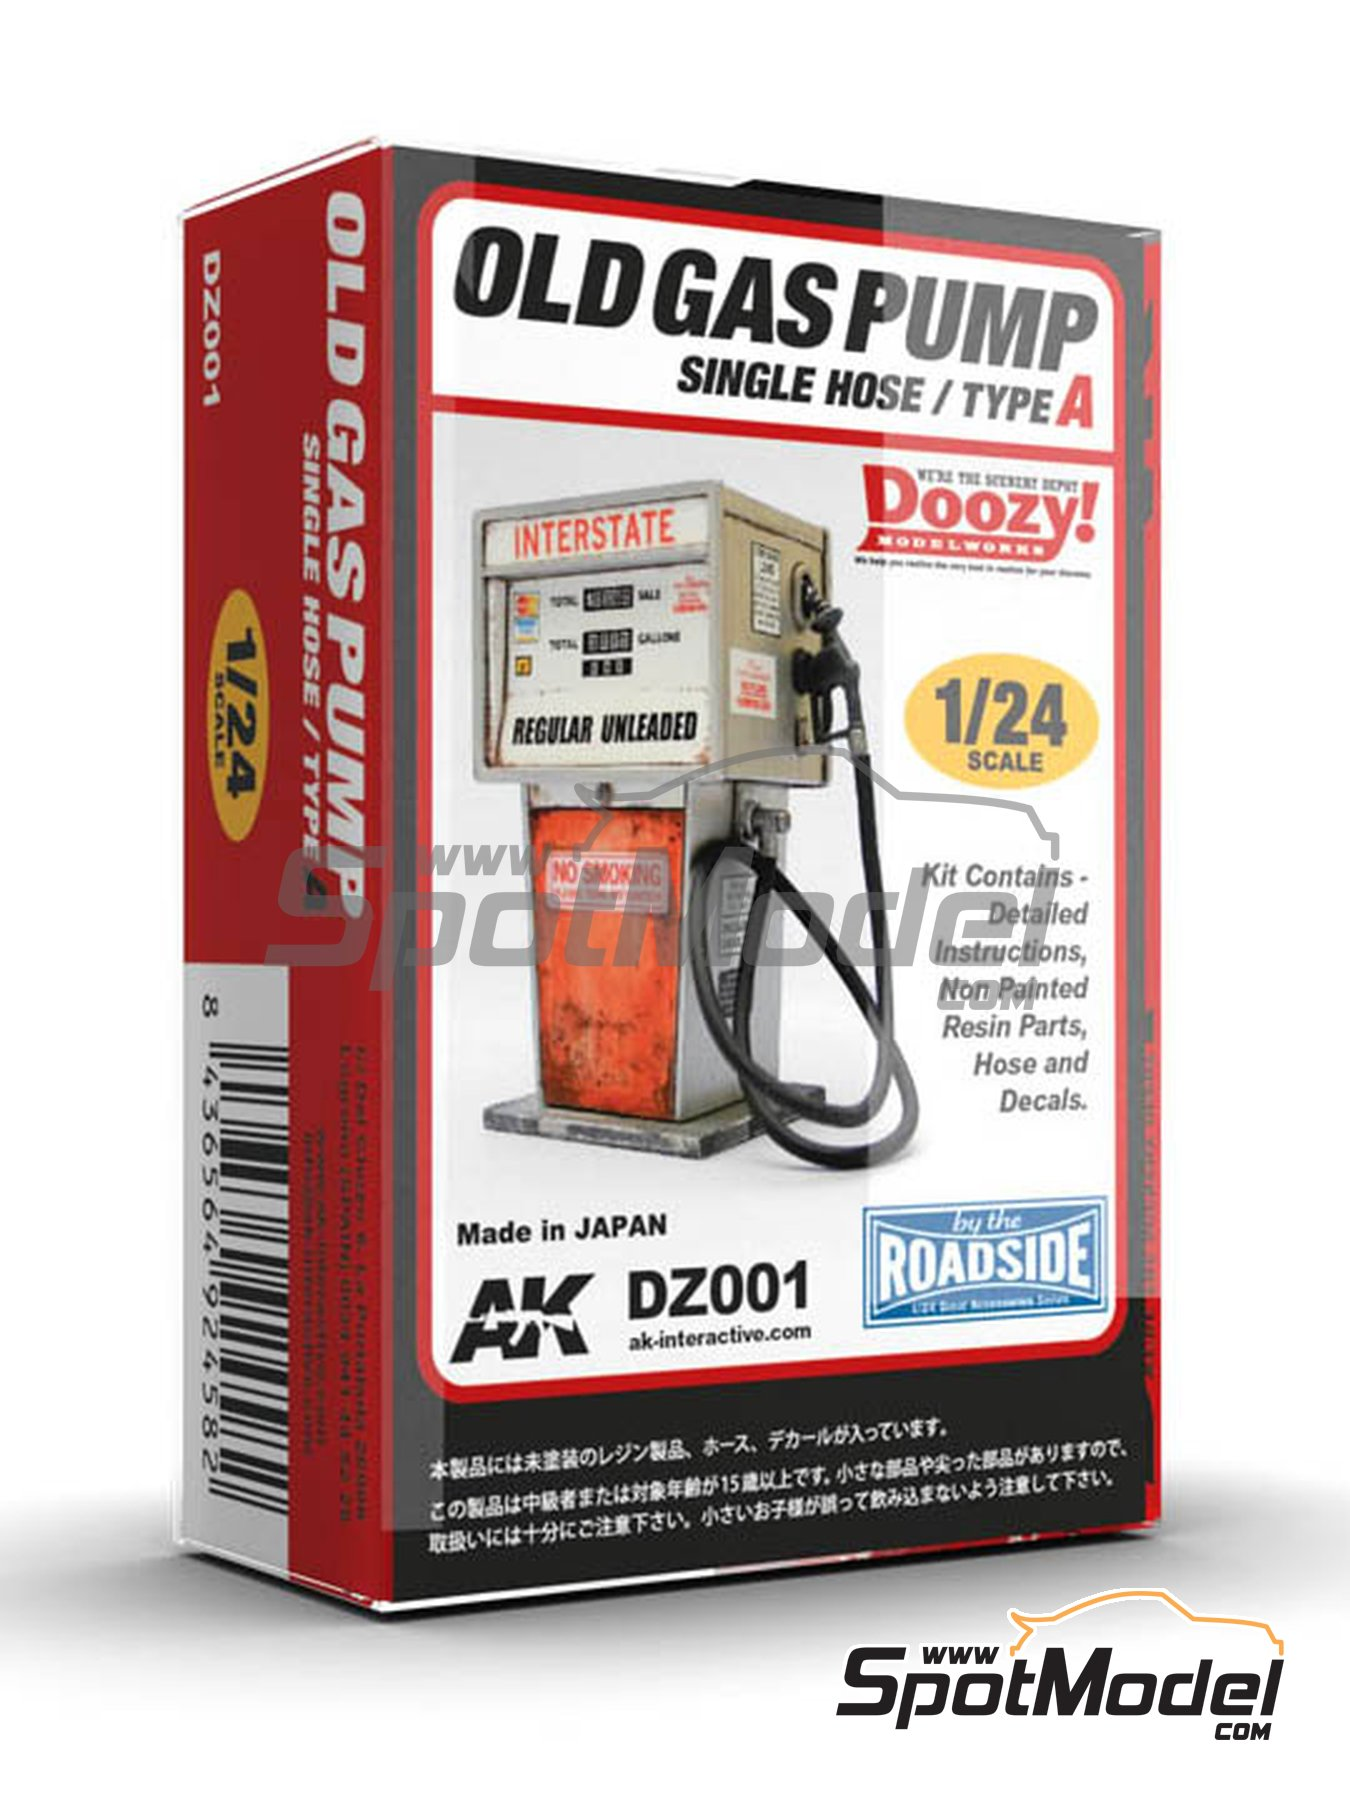 Interstate old gas pump single hose - Type A | Model kit in 1/24 scale manufactured by Doozy Modelworks (ref. DZ001) image